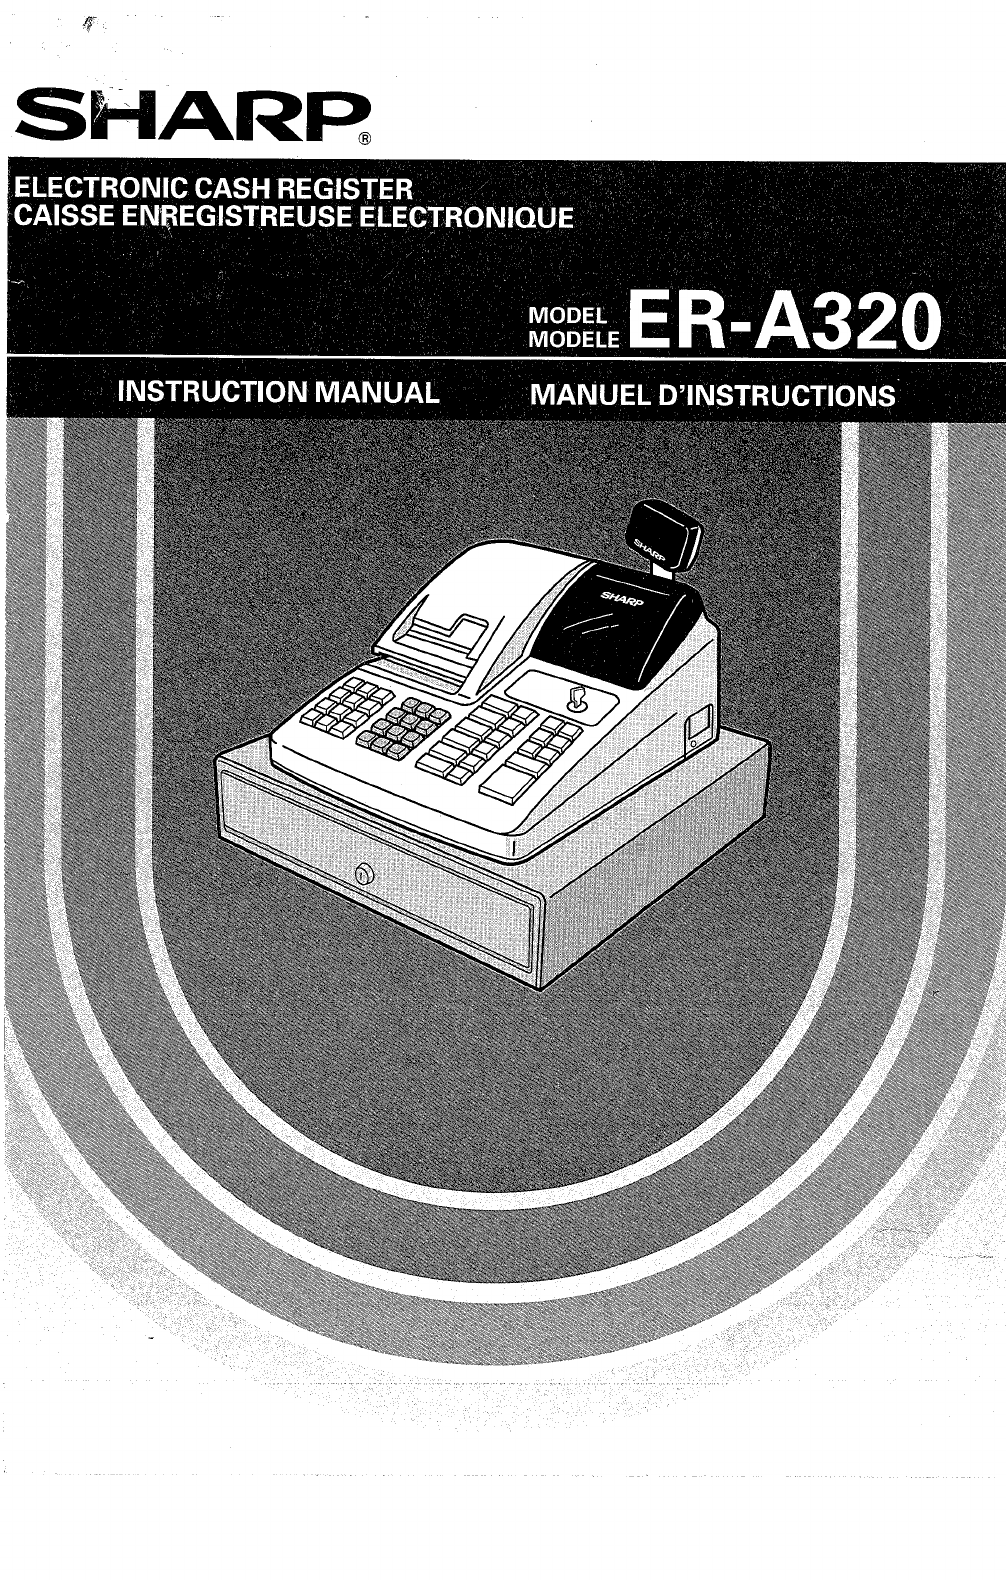 sharp cash register er a320 user guide manualsonline com rh office manualsonline com sharp cash register xe-a102 instruction manual sharp up-700 cash register instruction manual